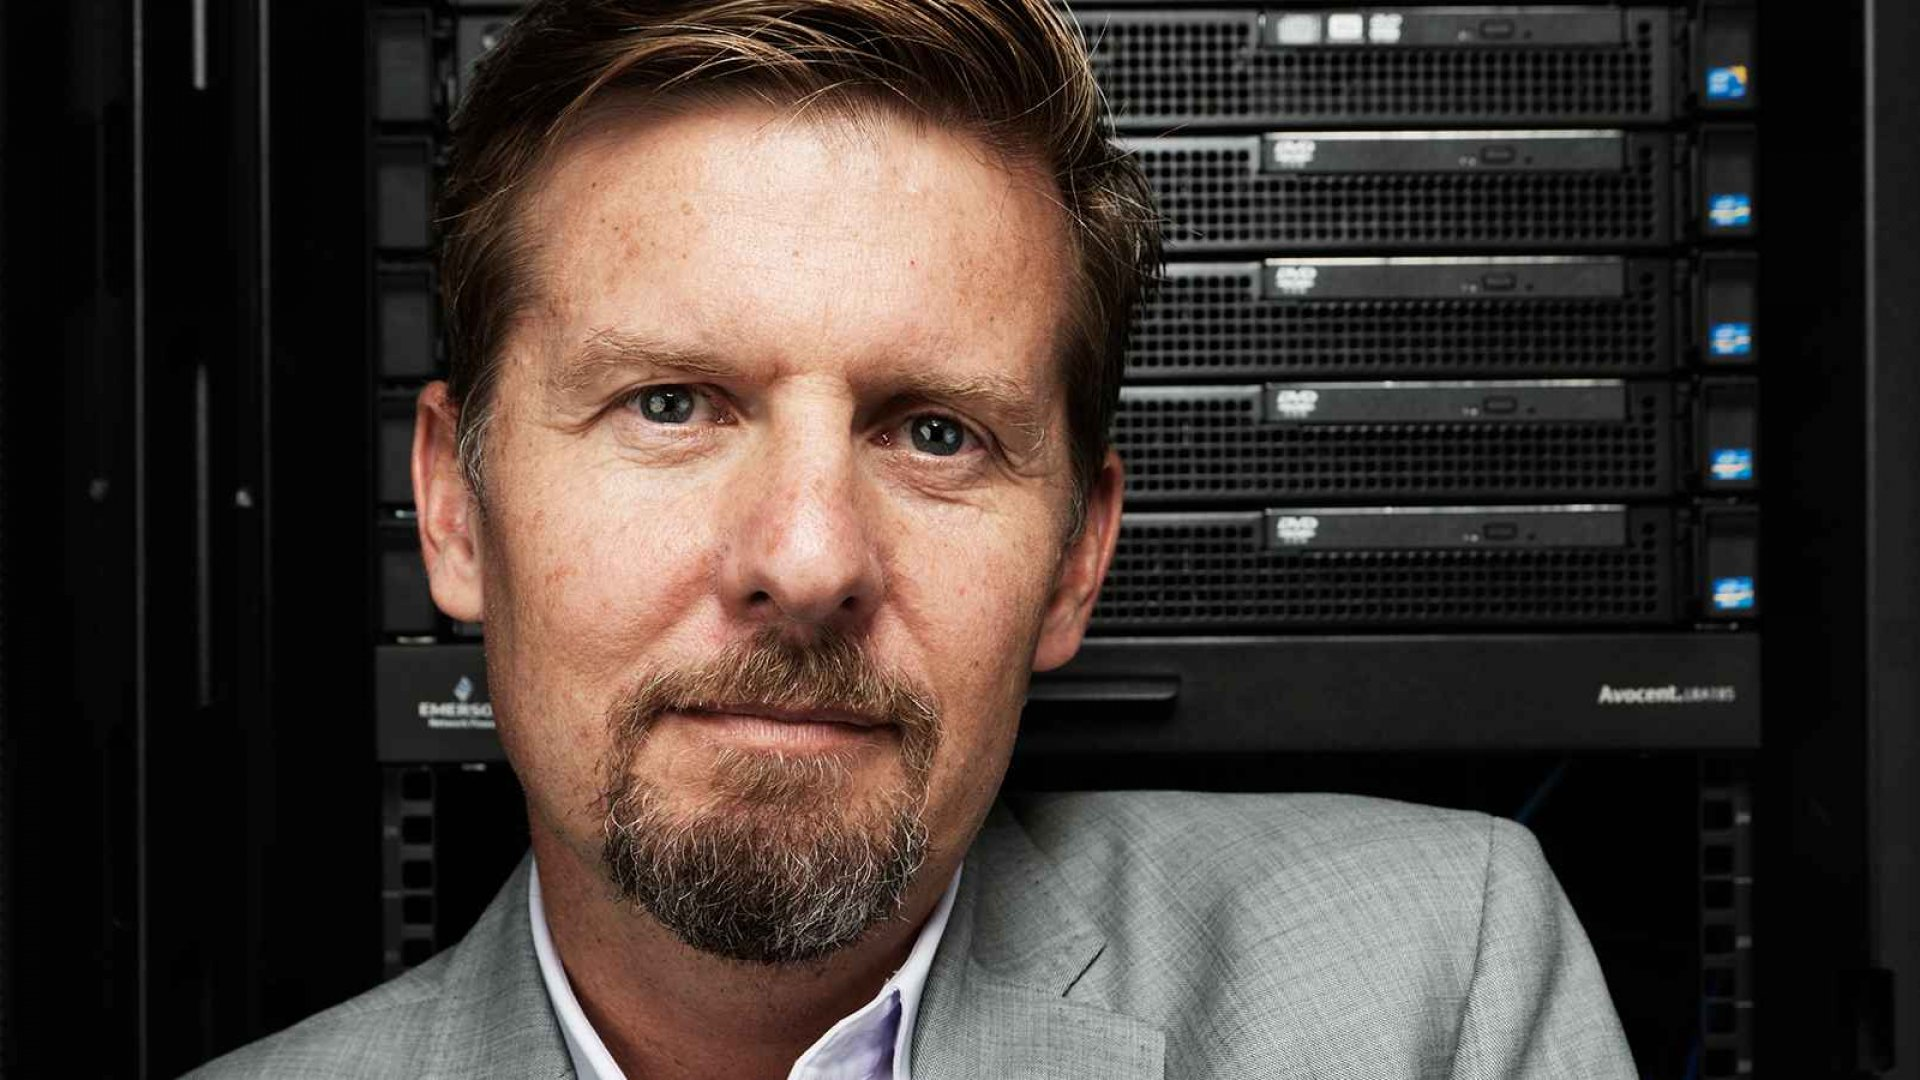 Stuart McClure, CEO/President and founder of Cylance.